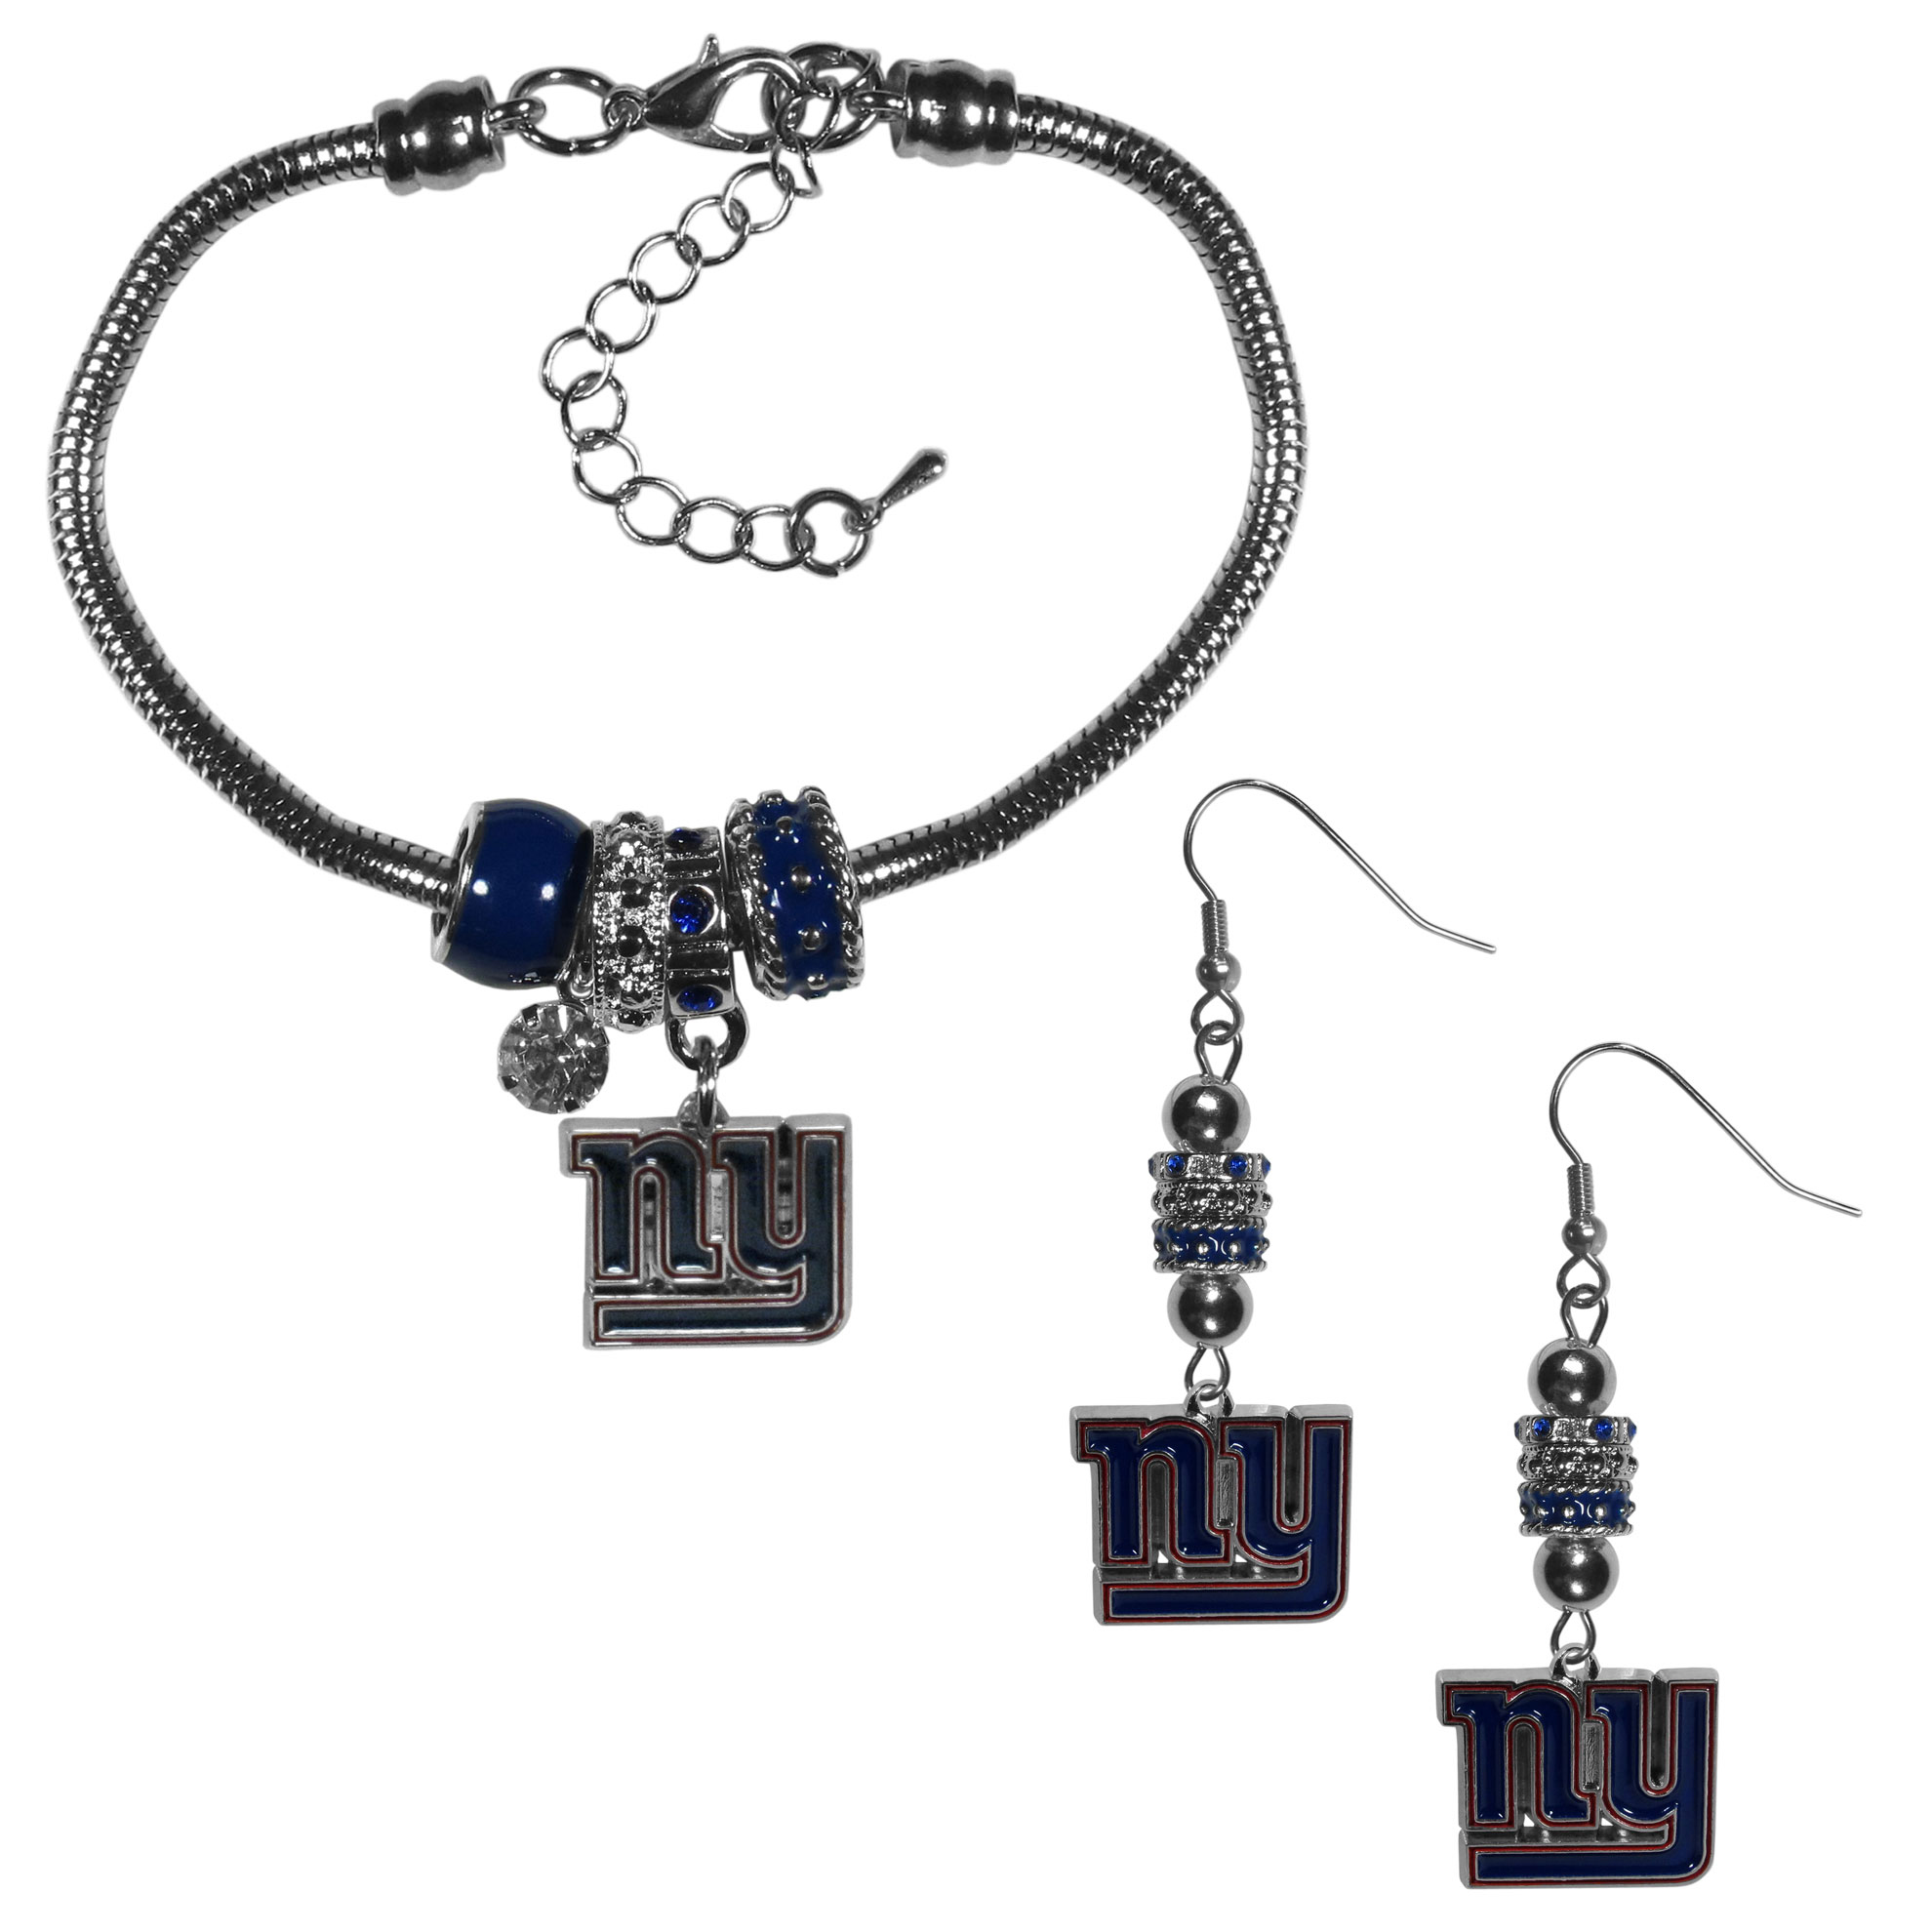 New York Giants Euro Bead Earrings and Bracelet Set - We combine the popular Euro bead style with your love of the New York Giants with this beautiful jewelry set that includes earrings and a matching bracelet. The stylish earrings feature hypoallergenic, nickel free fishhook posts and 3 team colored Euro beads and a metal team charm. The matching snake chain bracelet is 7.5 inches long with a 2 inch extender and 4 Euro beads with a rhinestone charm and team charm.